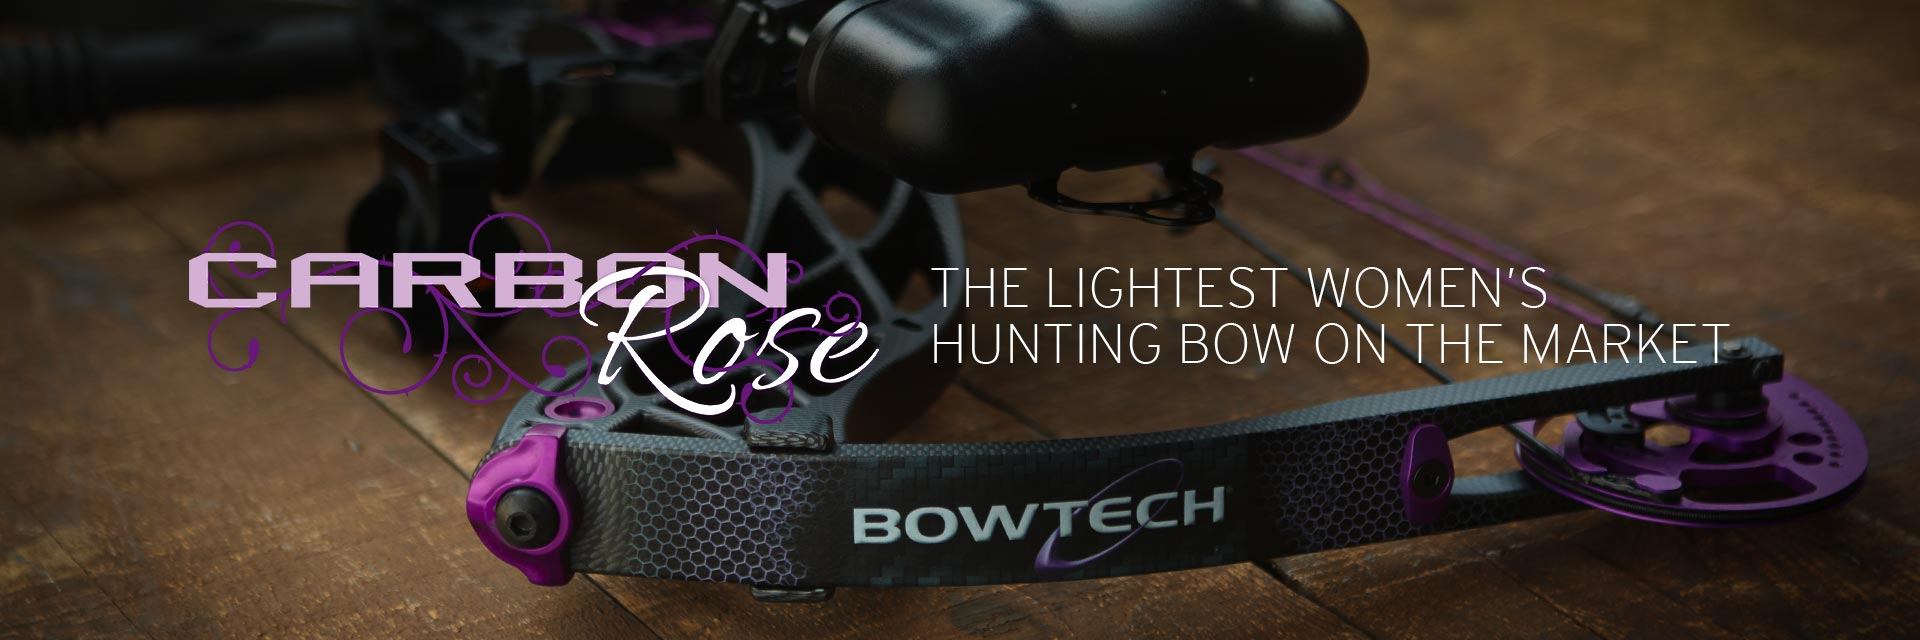 Carbon Rose - The lightest women's hunting bow on the market